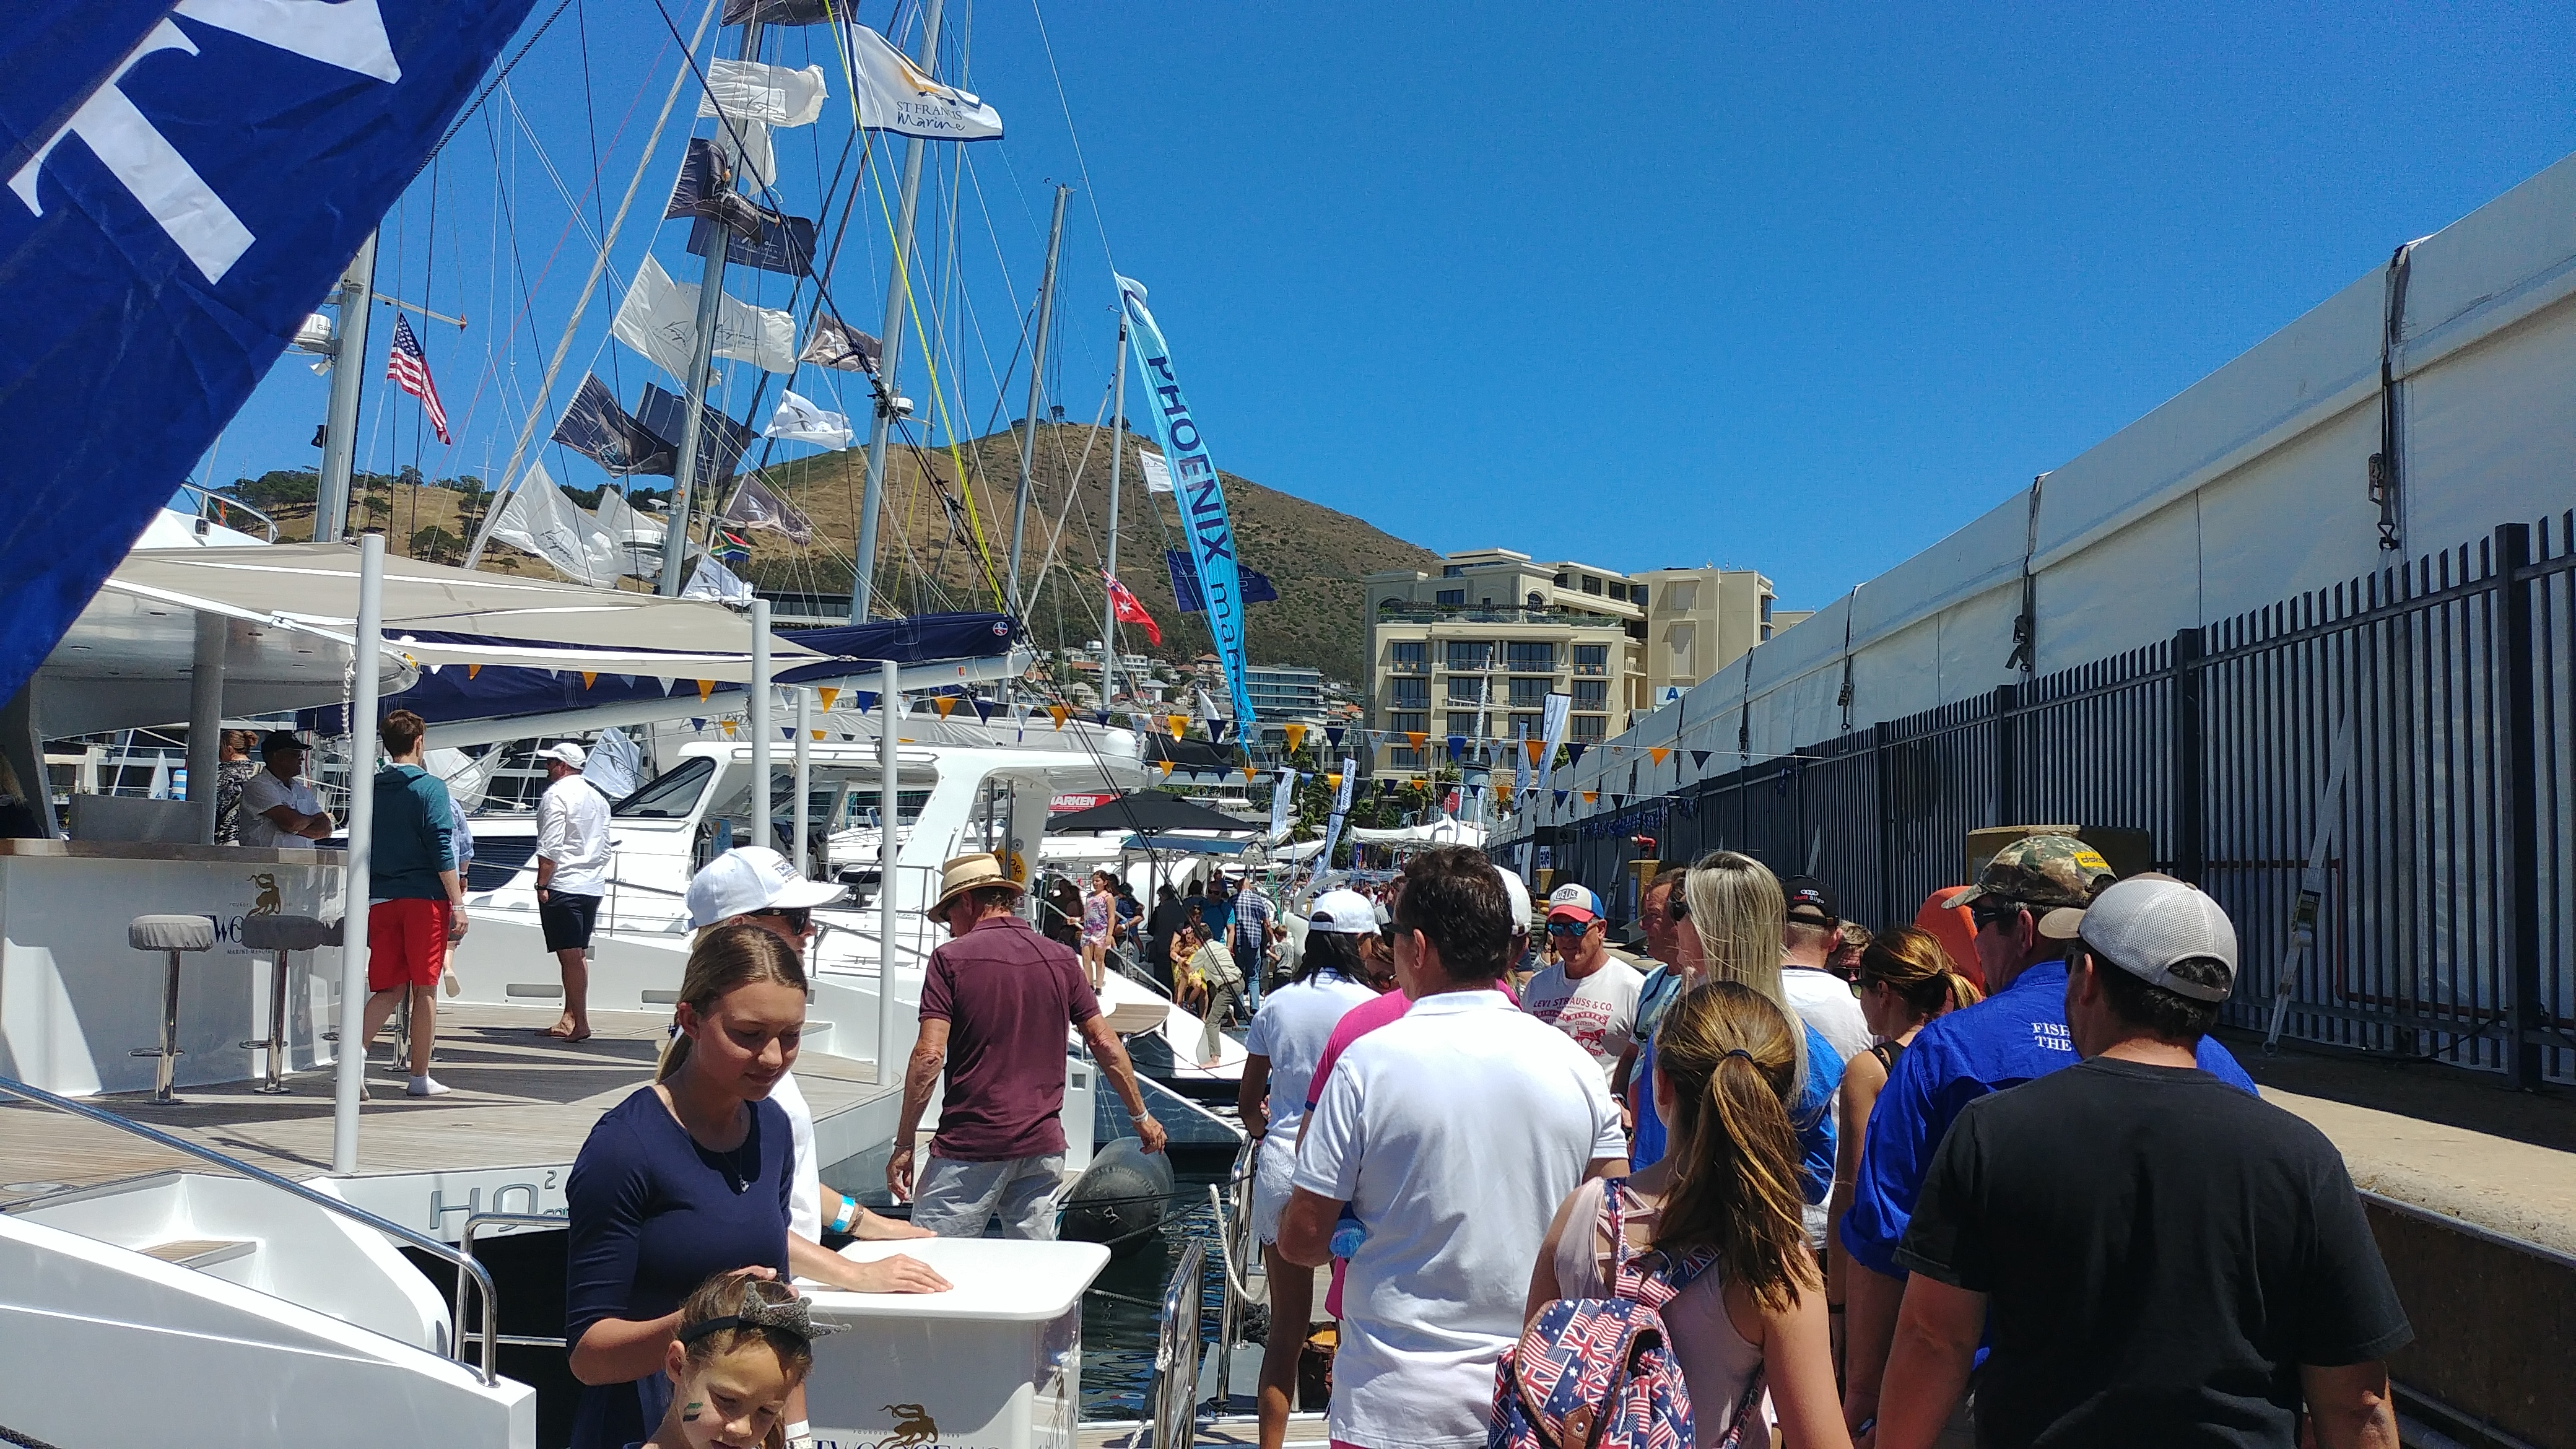 Visitors at the 2018 Cape Town International Boat Show